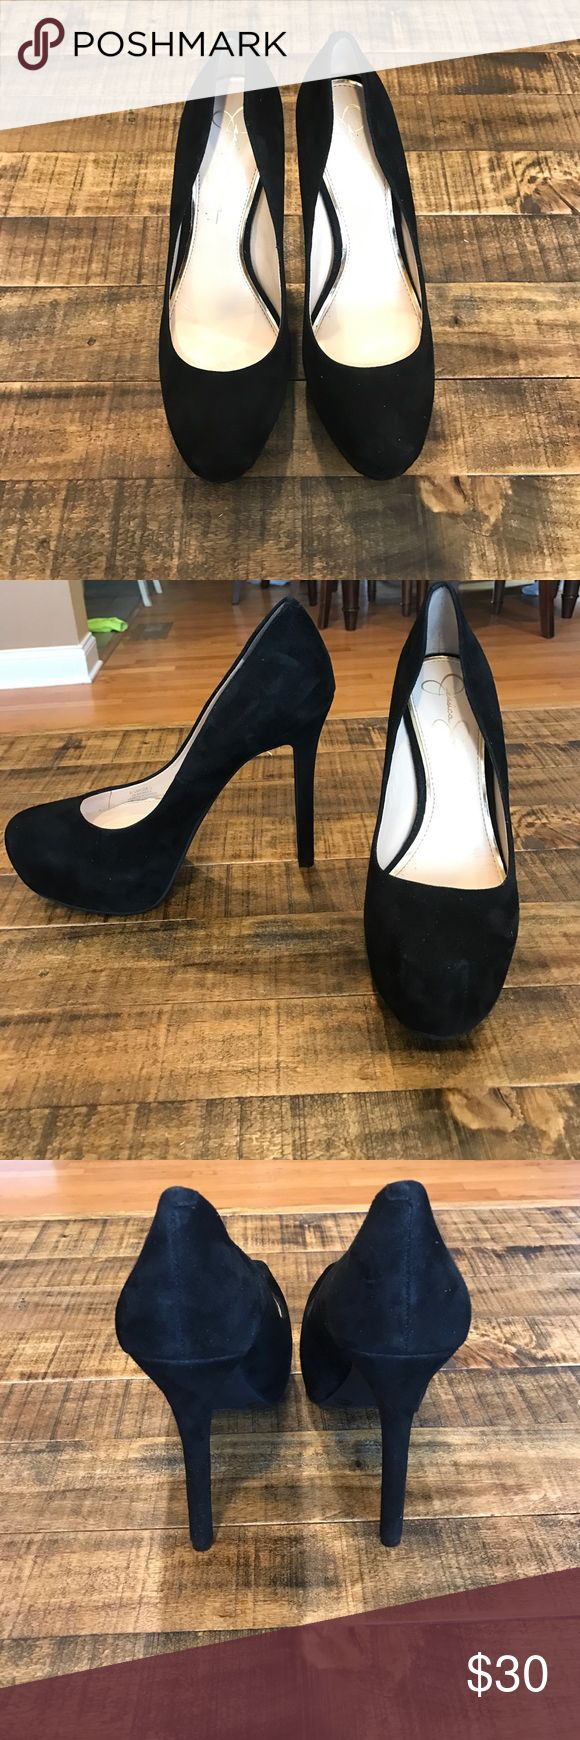 Jessica Simpson Black Pumps black suede JS pumps. Only been worn once! In great condition. Jessica Simpson Shoes Heels